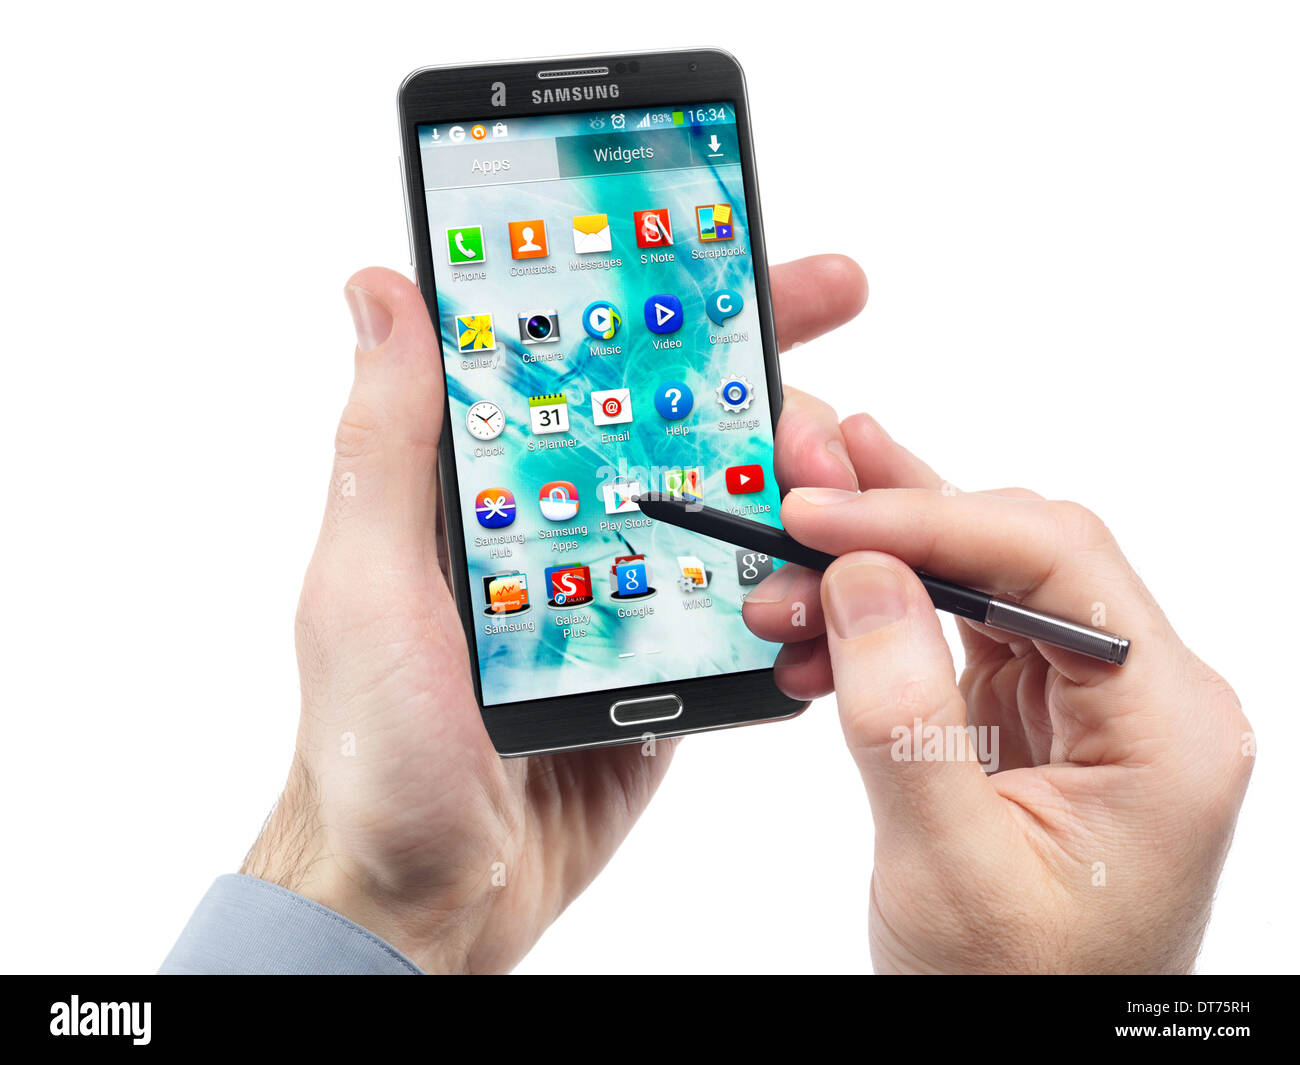 L'homme les mains avec smartphone Samsung Galaxy Note III isolé sur fond blanc Photo Stock